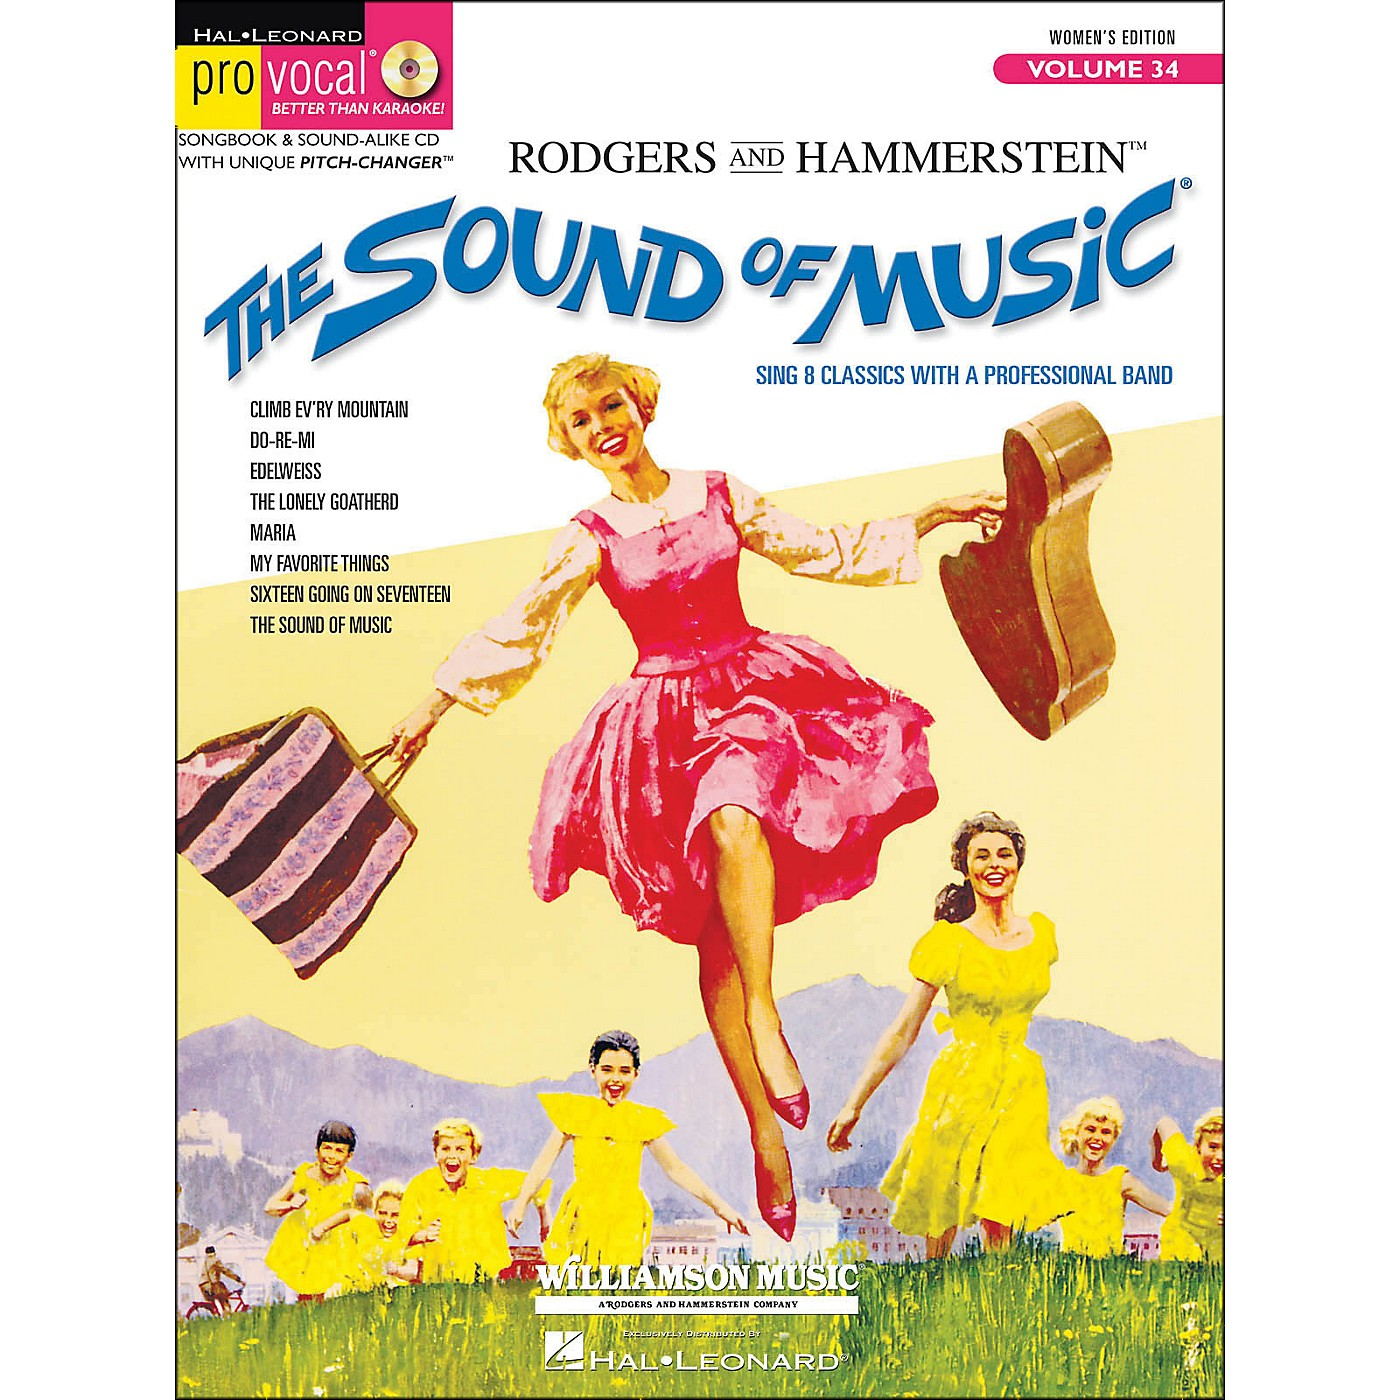 Hal Leonard The Sound Of Music Pro Vocal Series for Female Singers Volume 34 Book/CD thumbnail